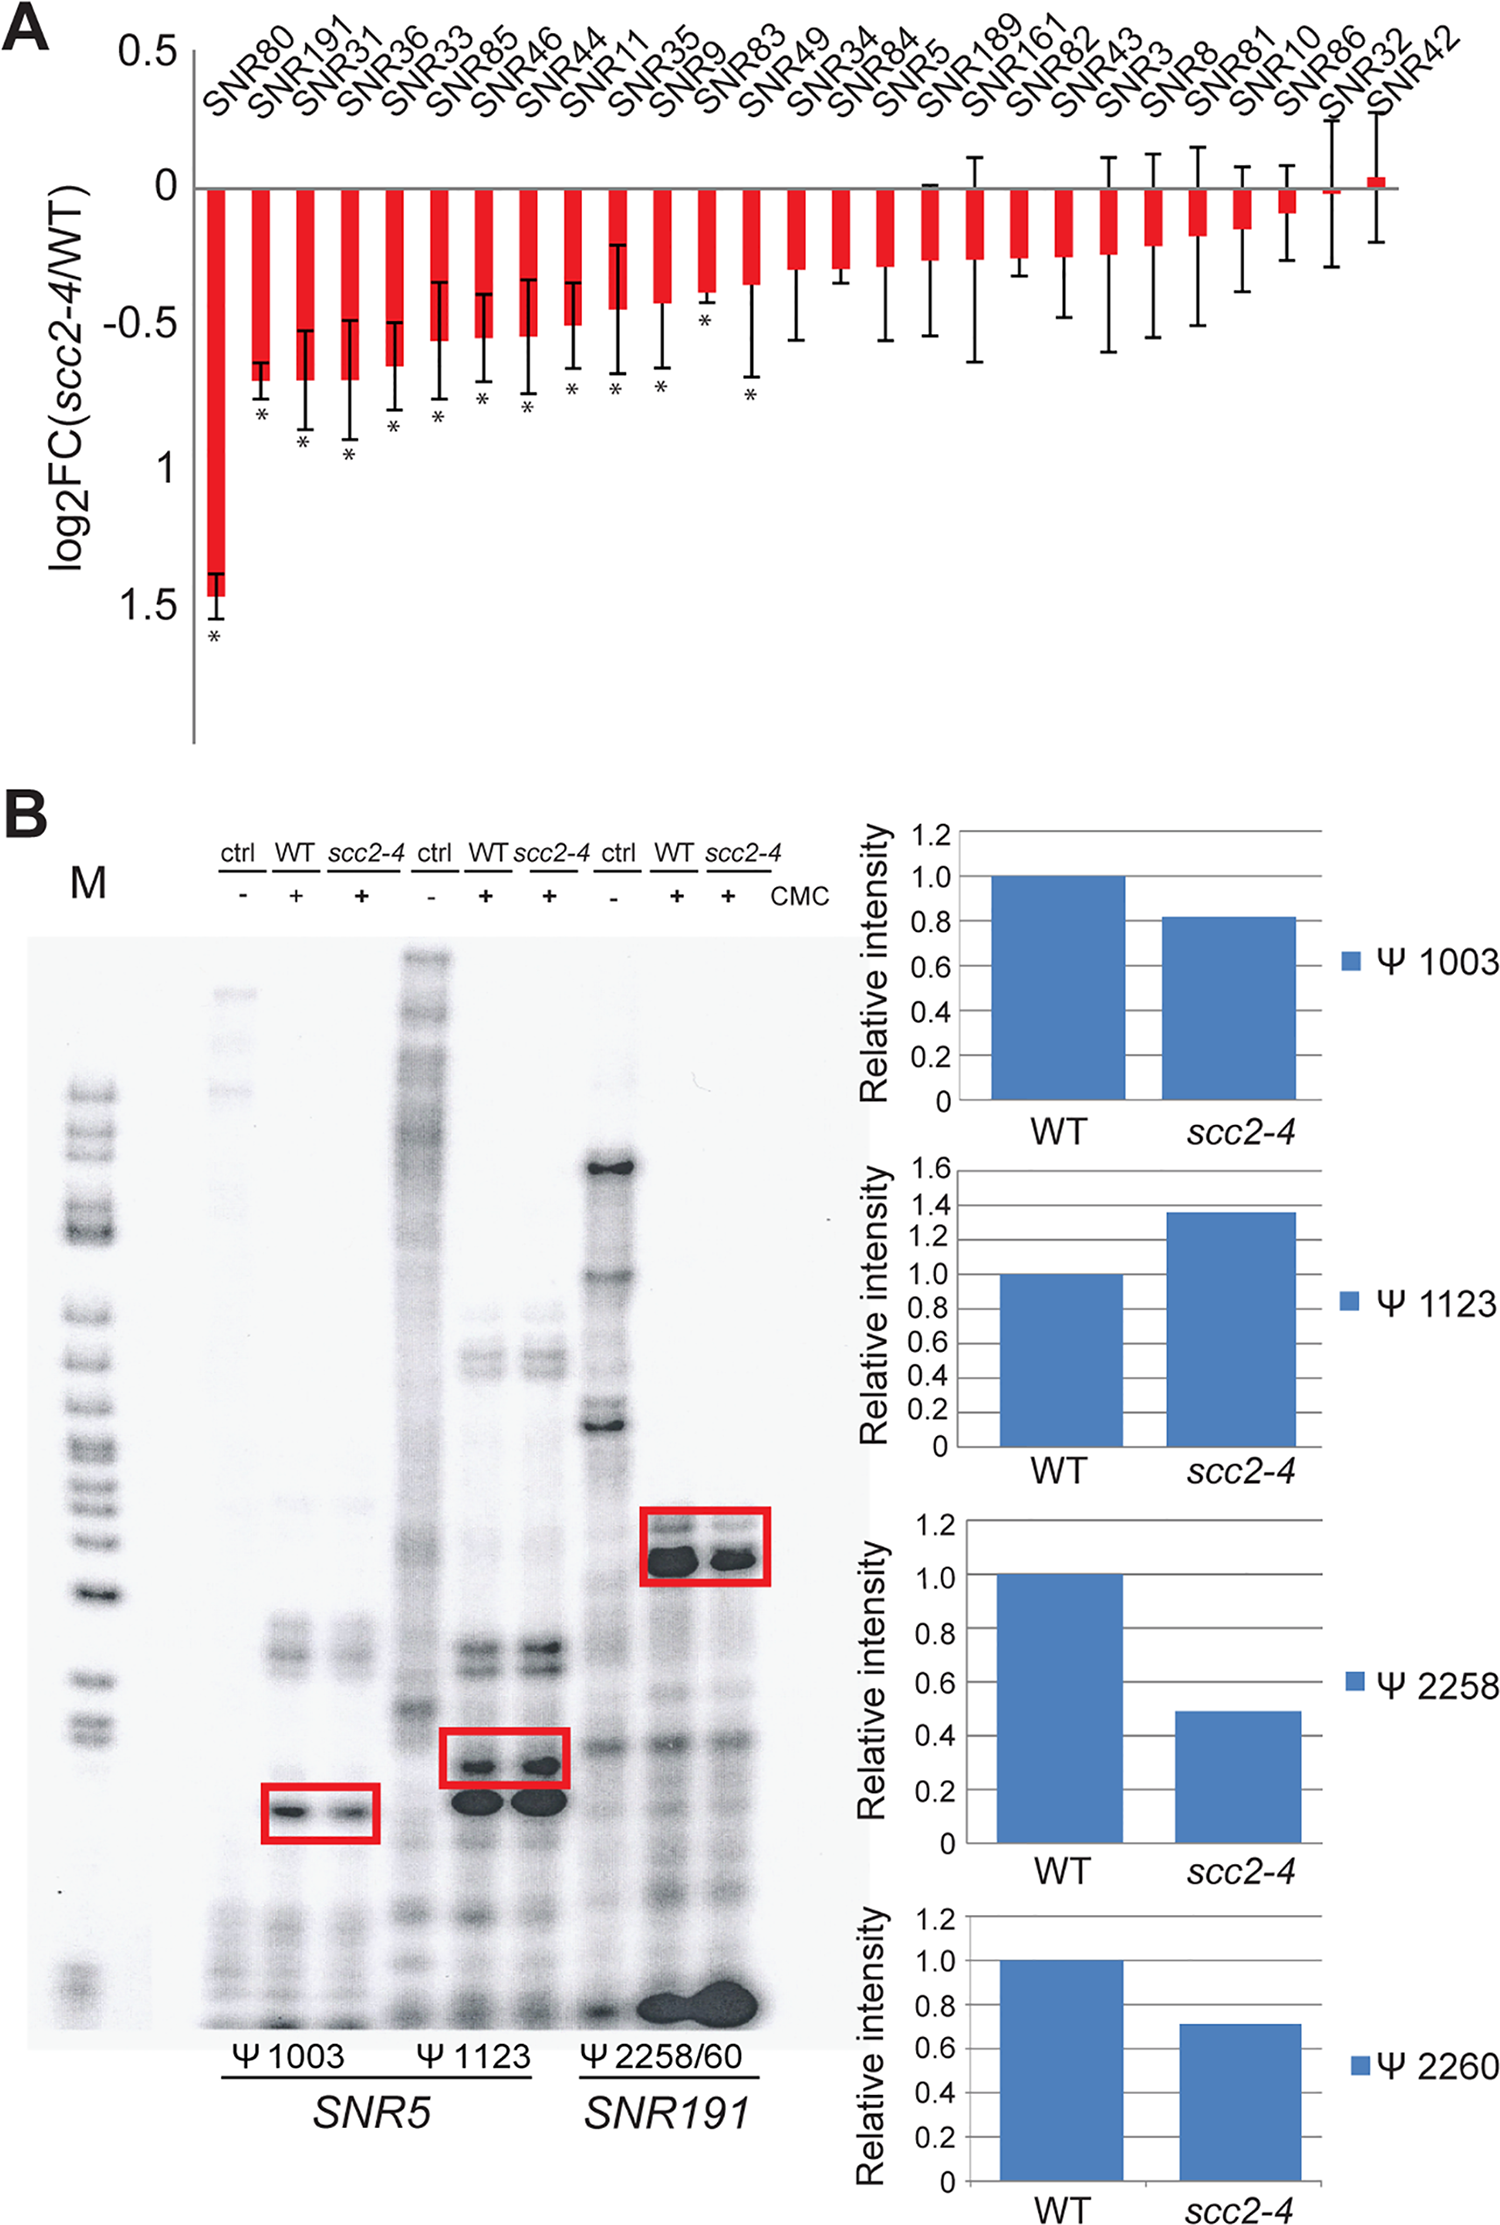 Pseudouridylation of rRNA is reduced in the <i>scc2-4</i> mutant.